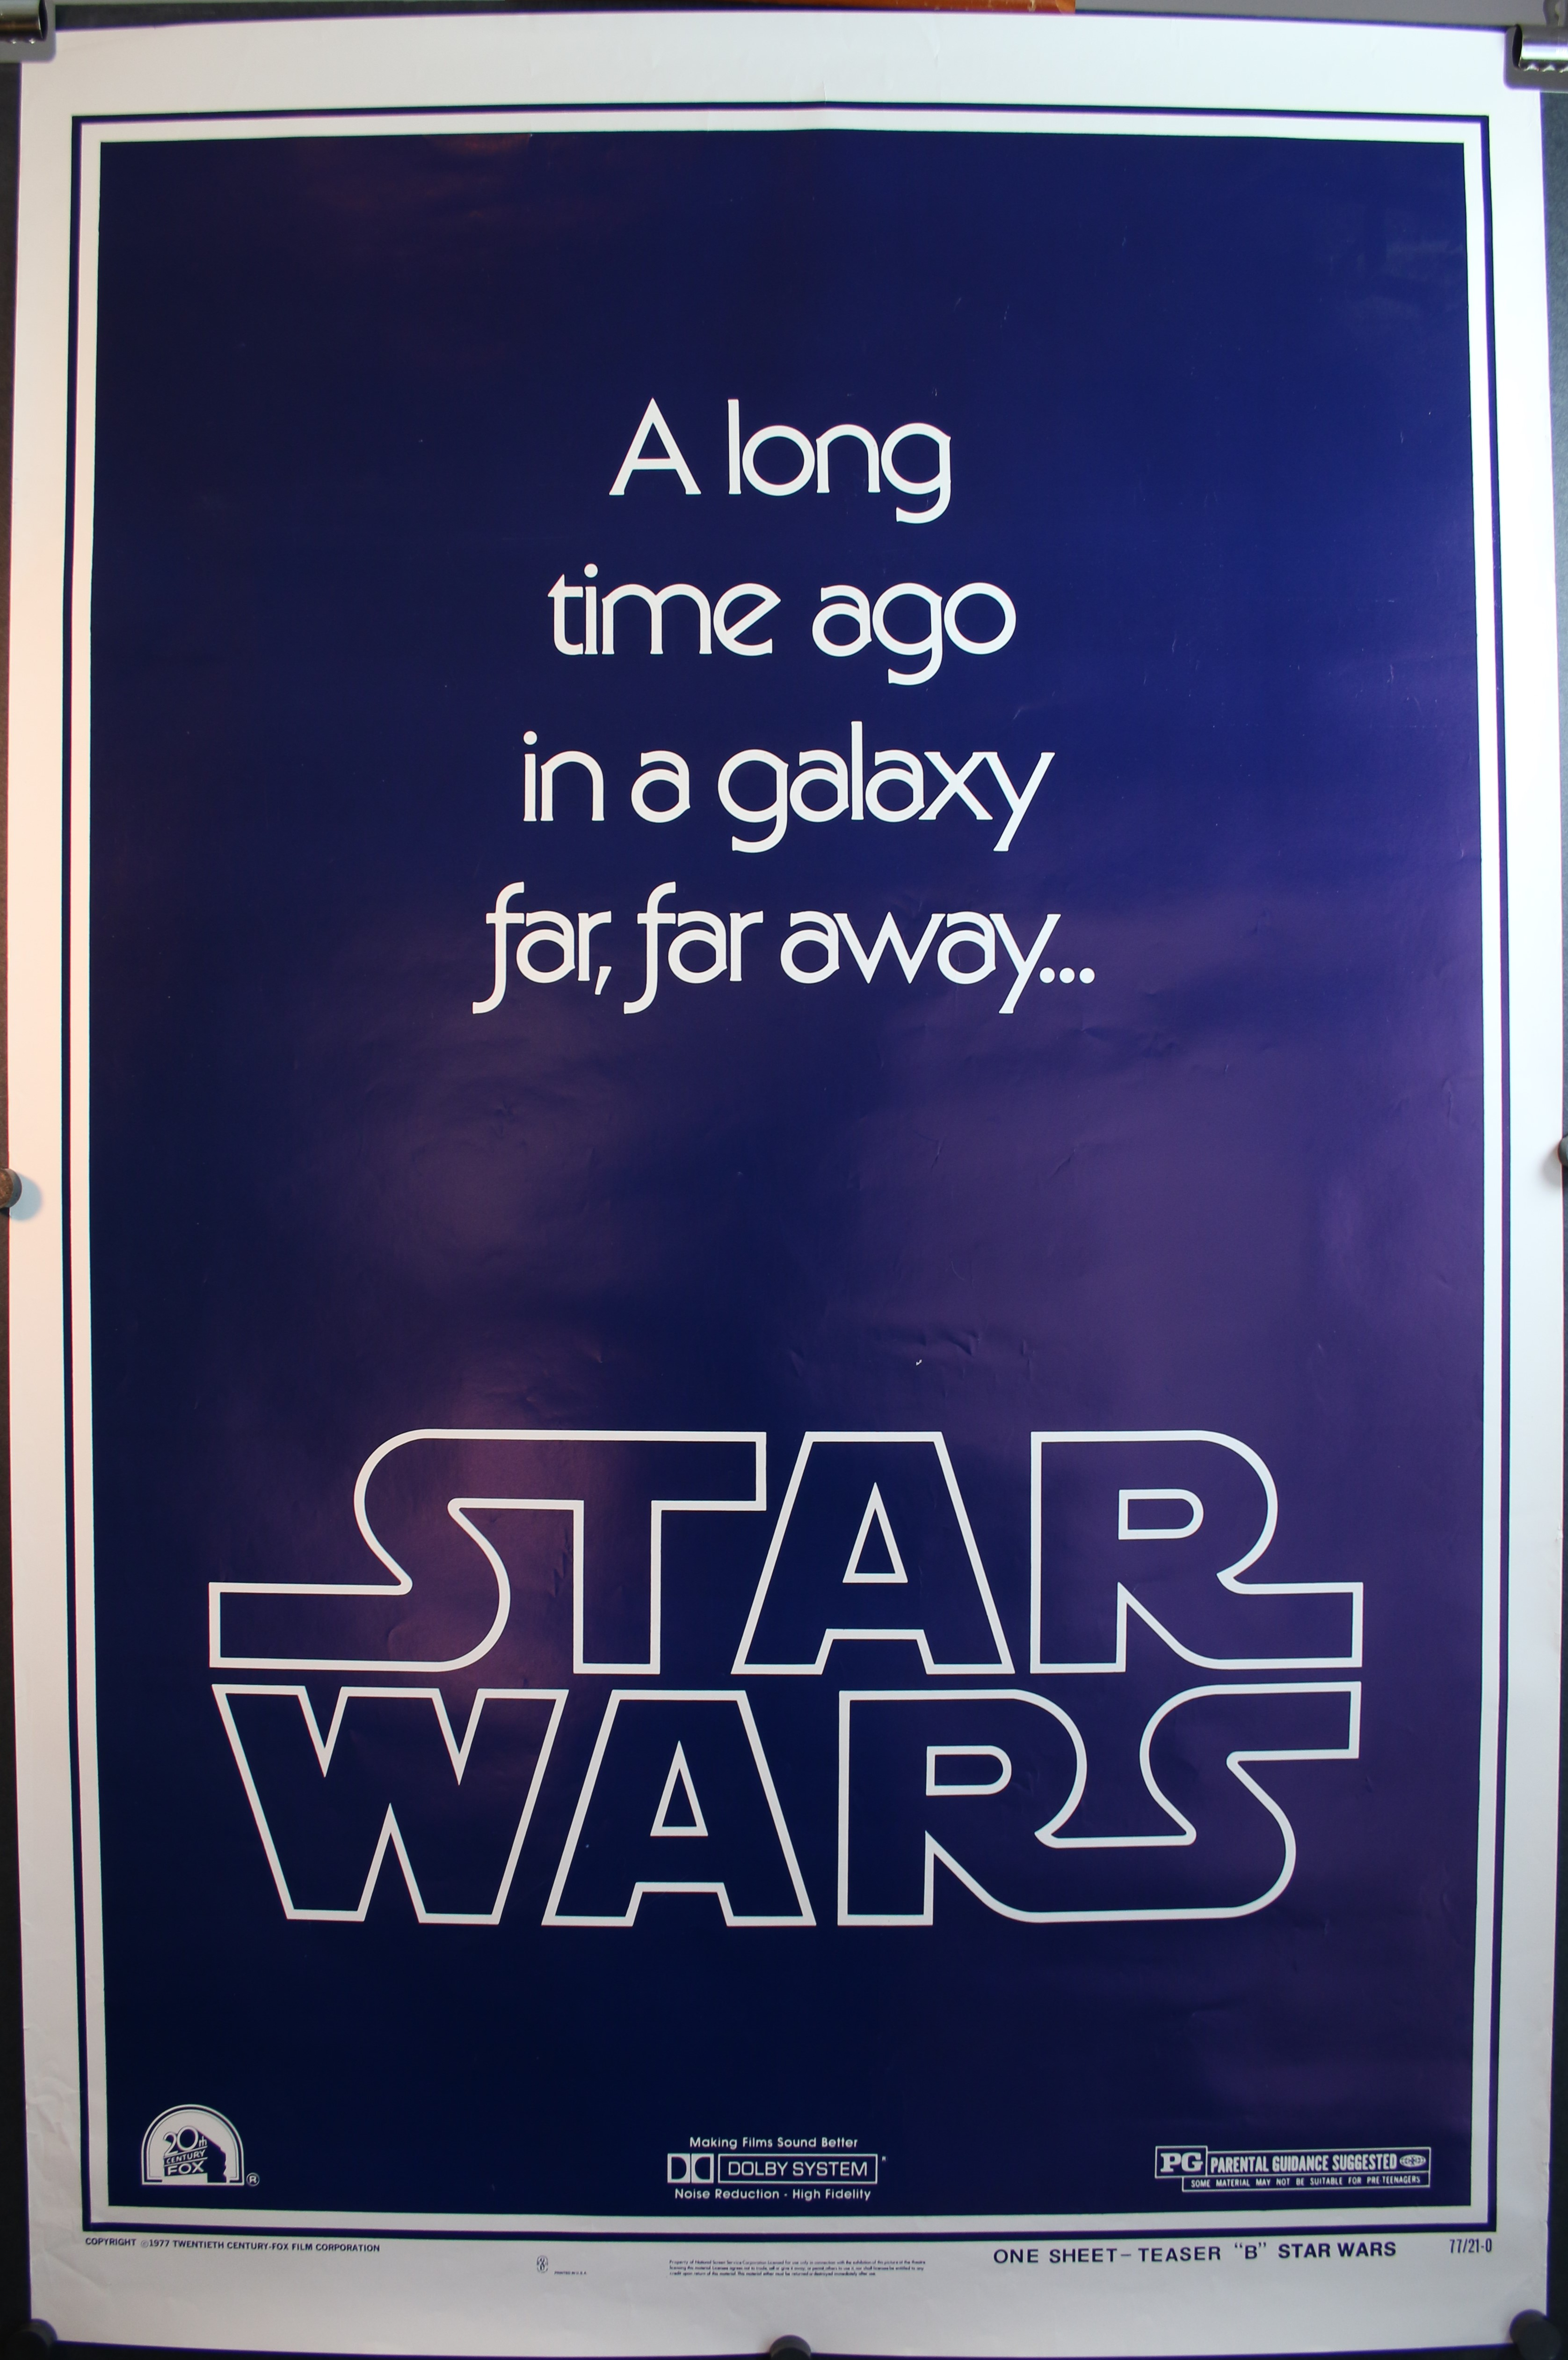 STAR WARS Authentic US Advance Teaser Style B 1 Sheet Movie Theater Poster For Sale